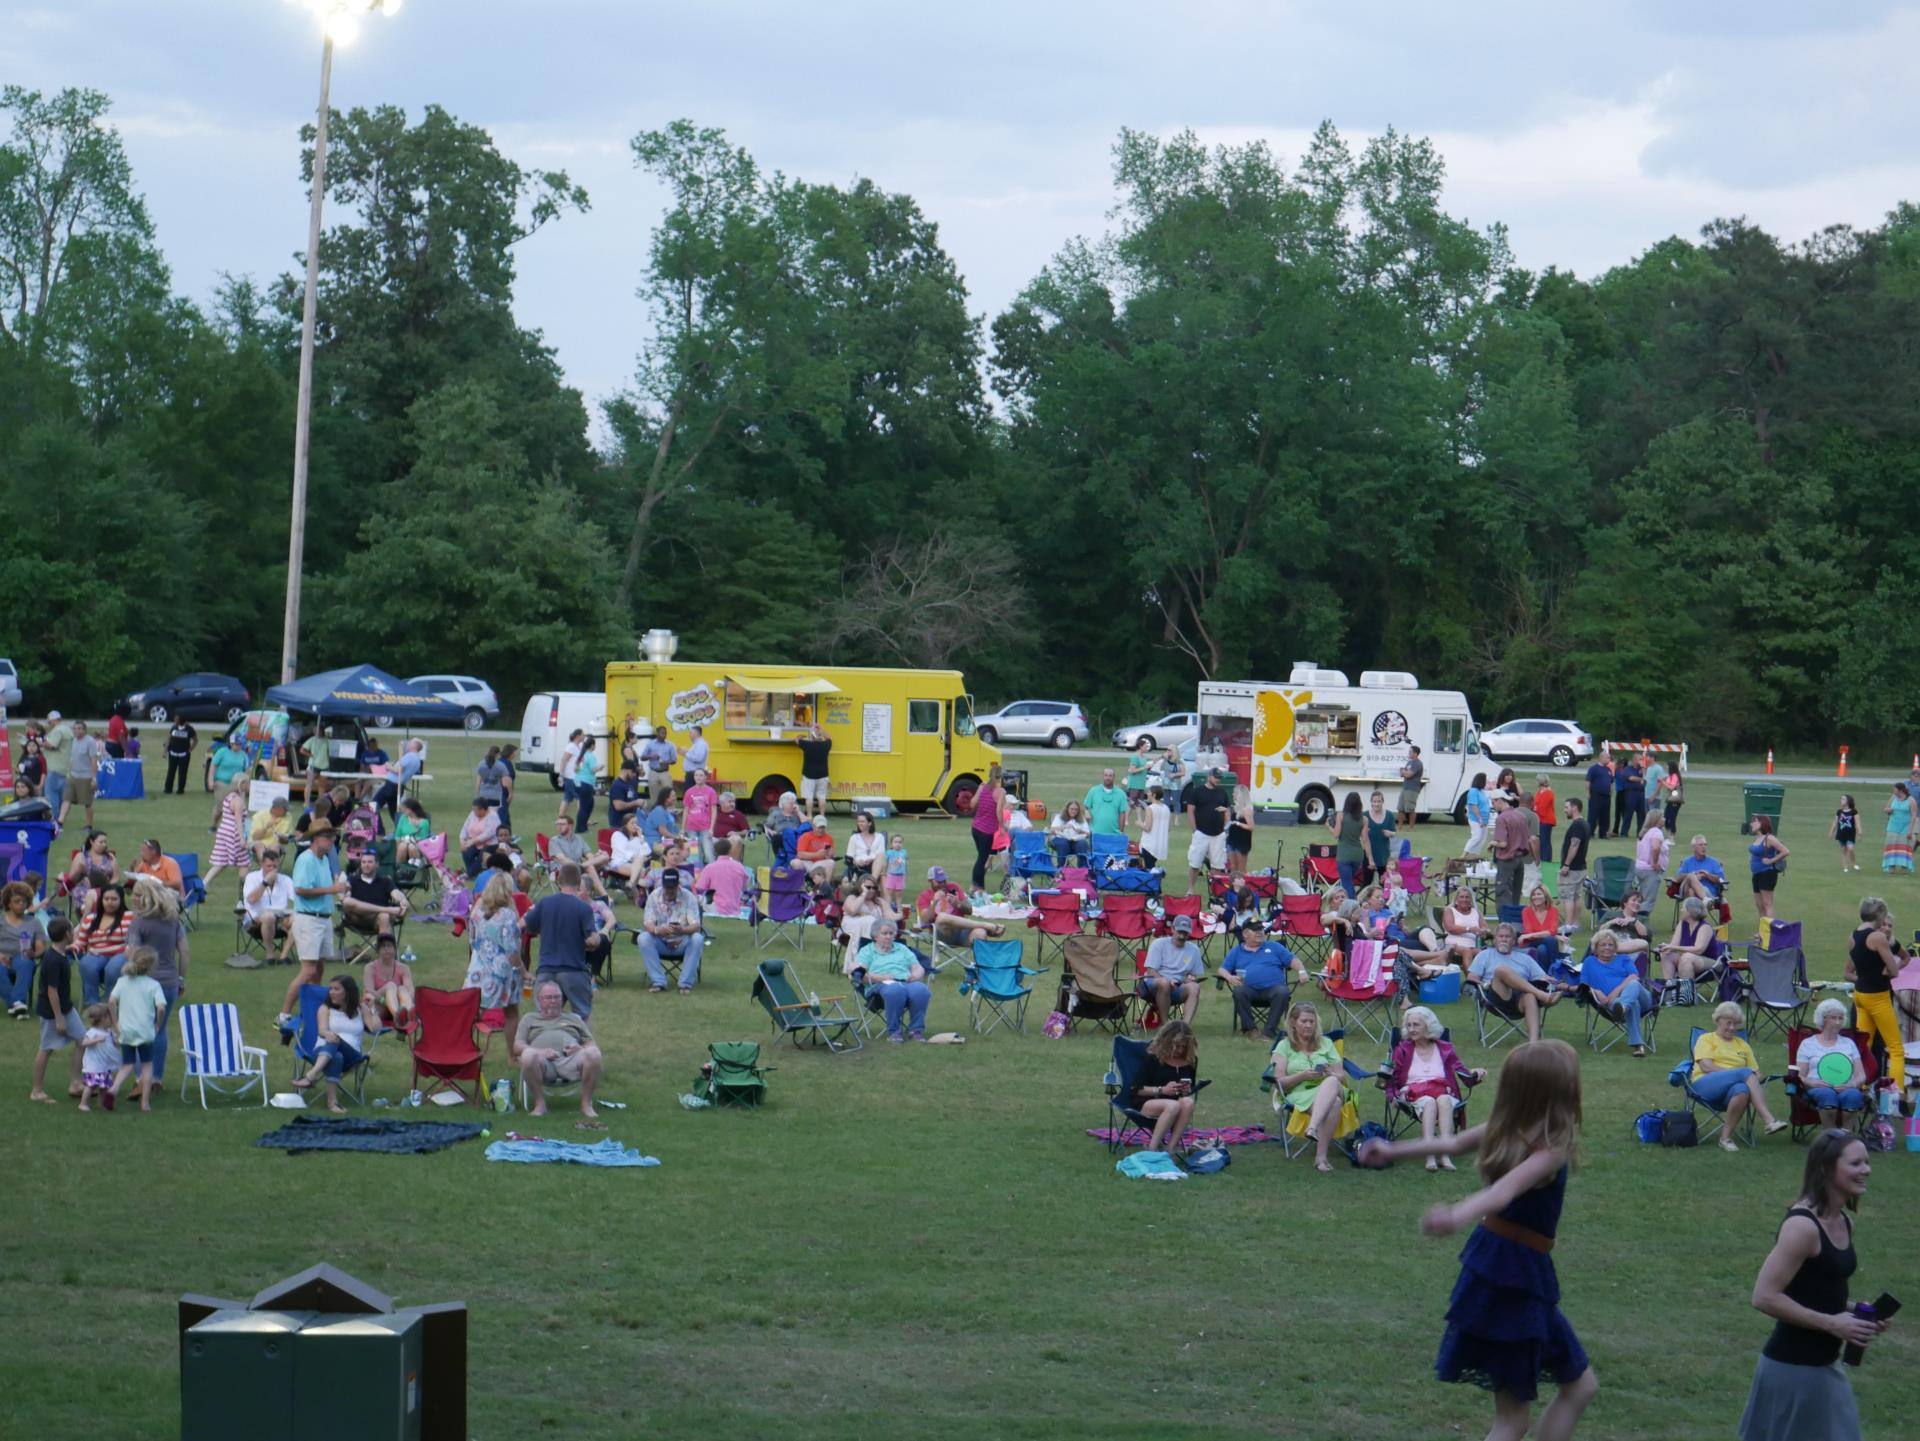 Citizens attending the Creekside Music Series